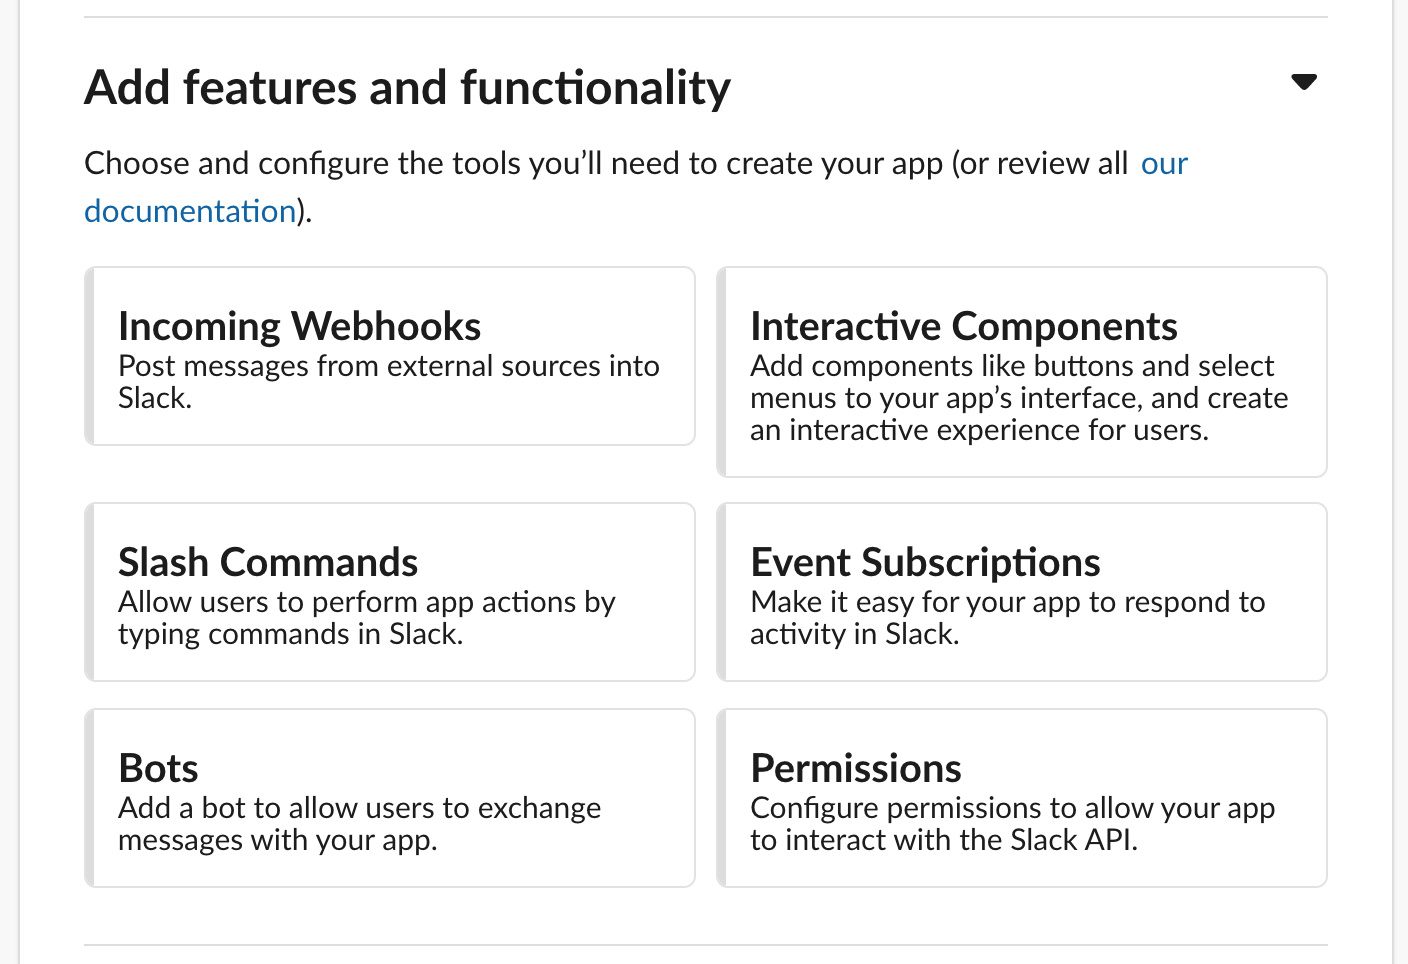 Features and Functionality of a slack app